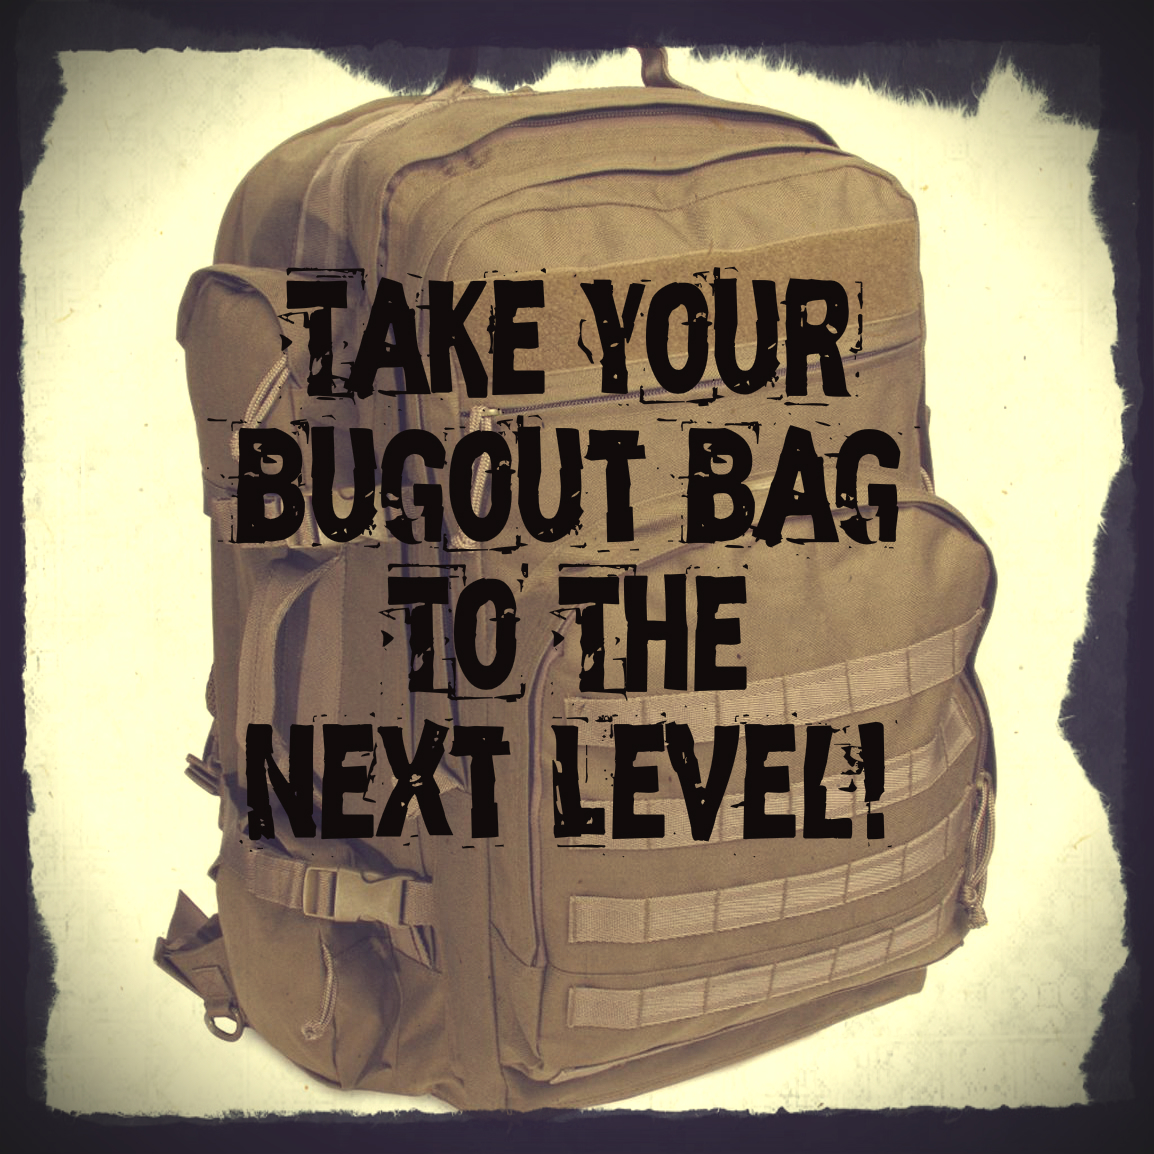 Take Your Bugout Bag to the Next Level!